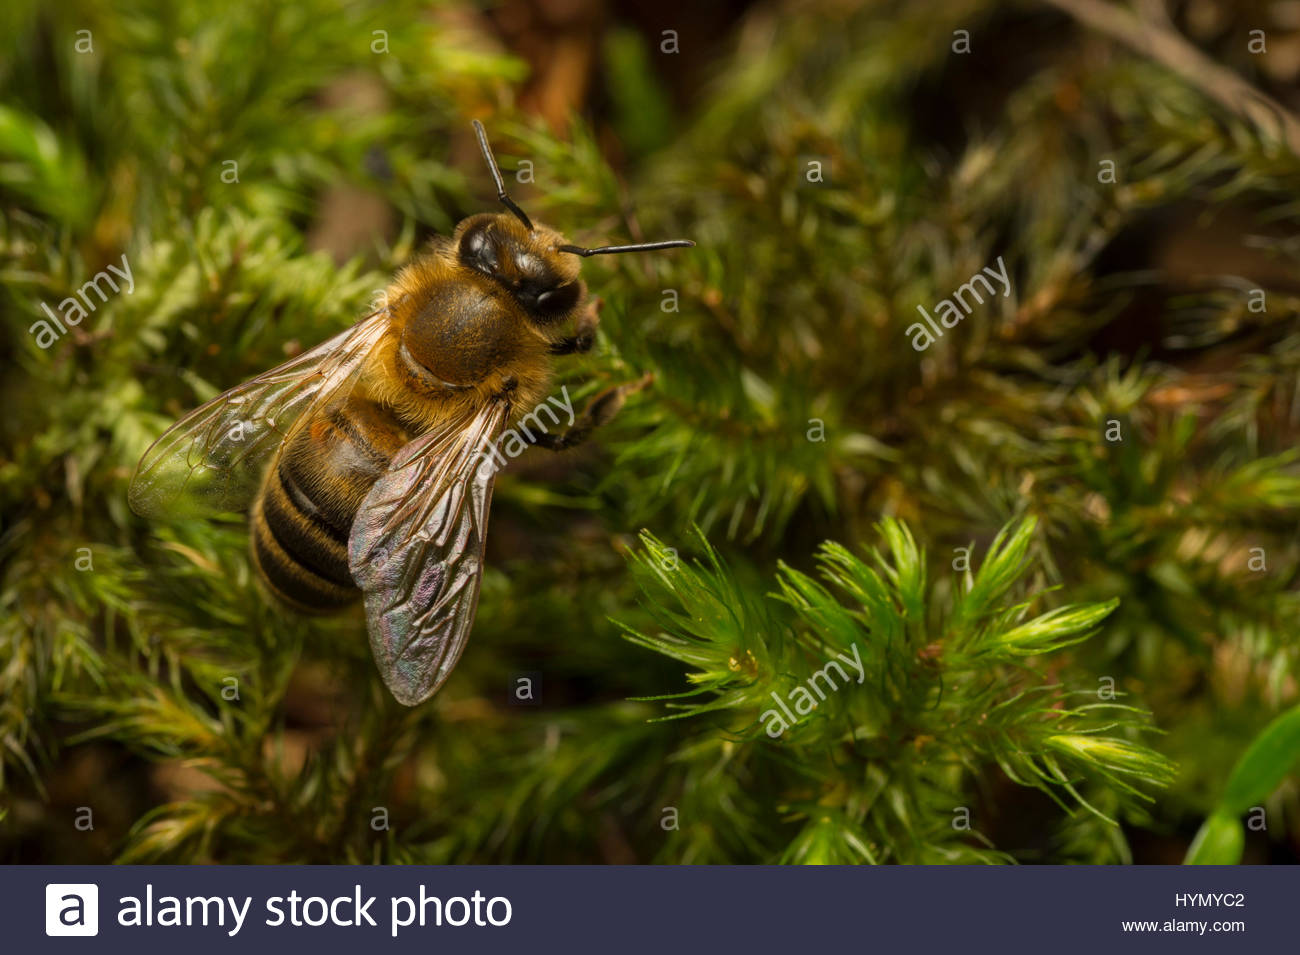 Extreme close up of a drone bee on a patch of moss. - Stock Image